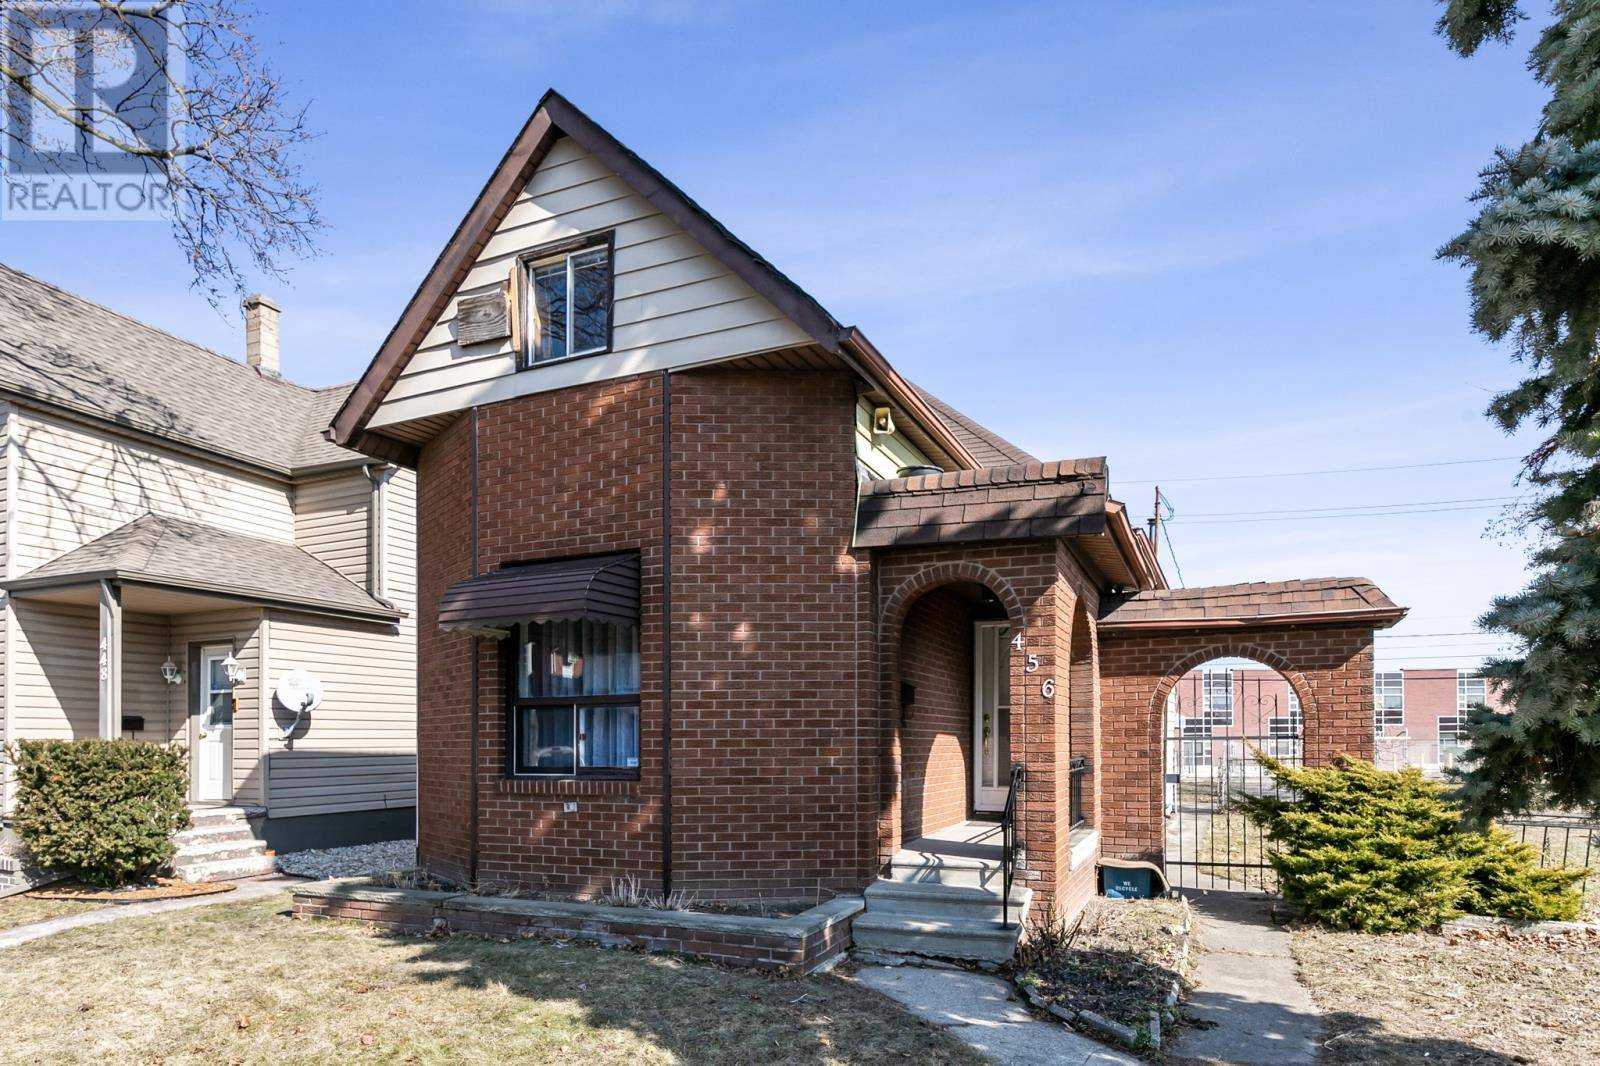 House for sale at 456 Langlois  Windsor Ontario - MLS: 20002261